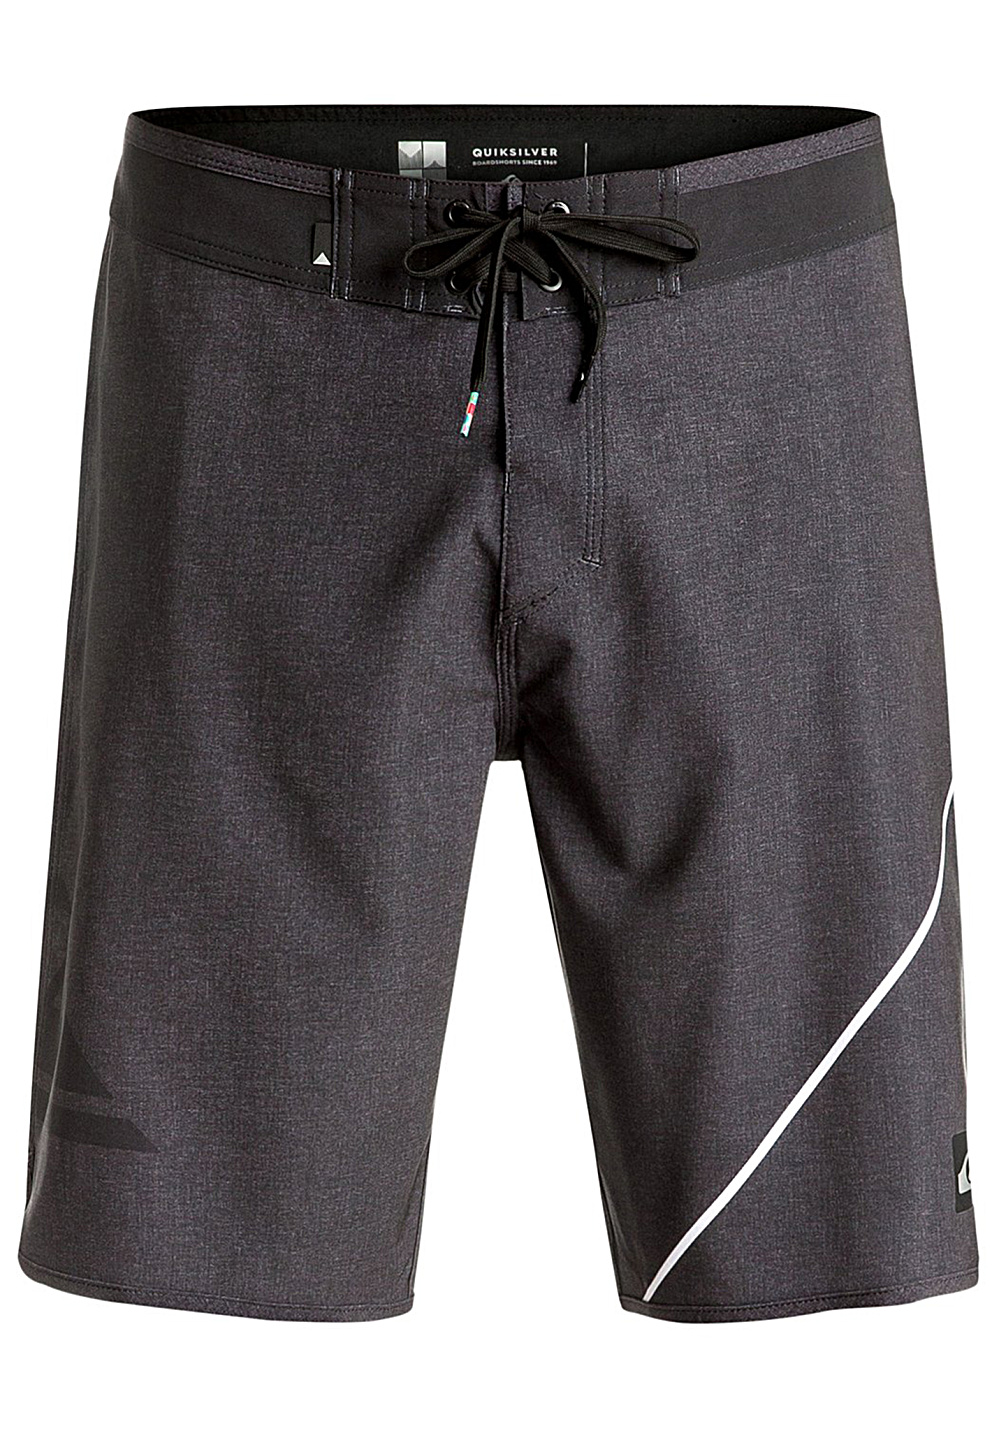 21d0b724d1 Quiksilver New Wave Everyday 20 - Boardshorts for Men - Black - Planet  Sports